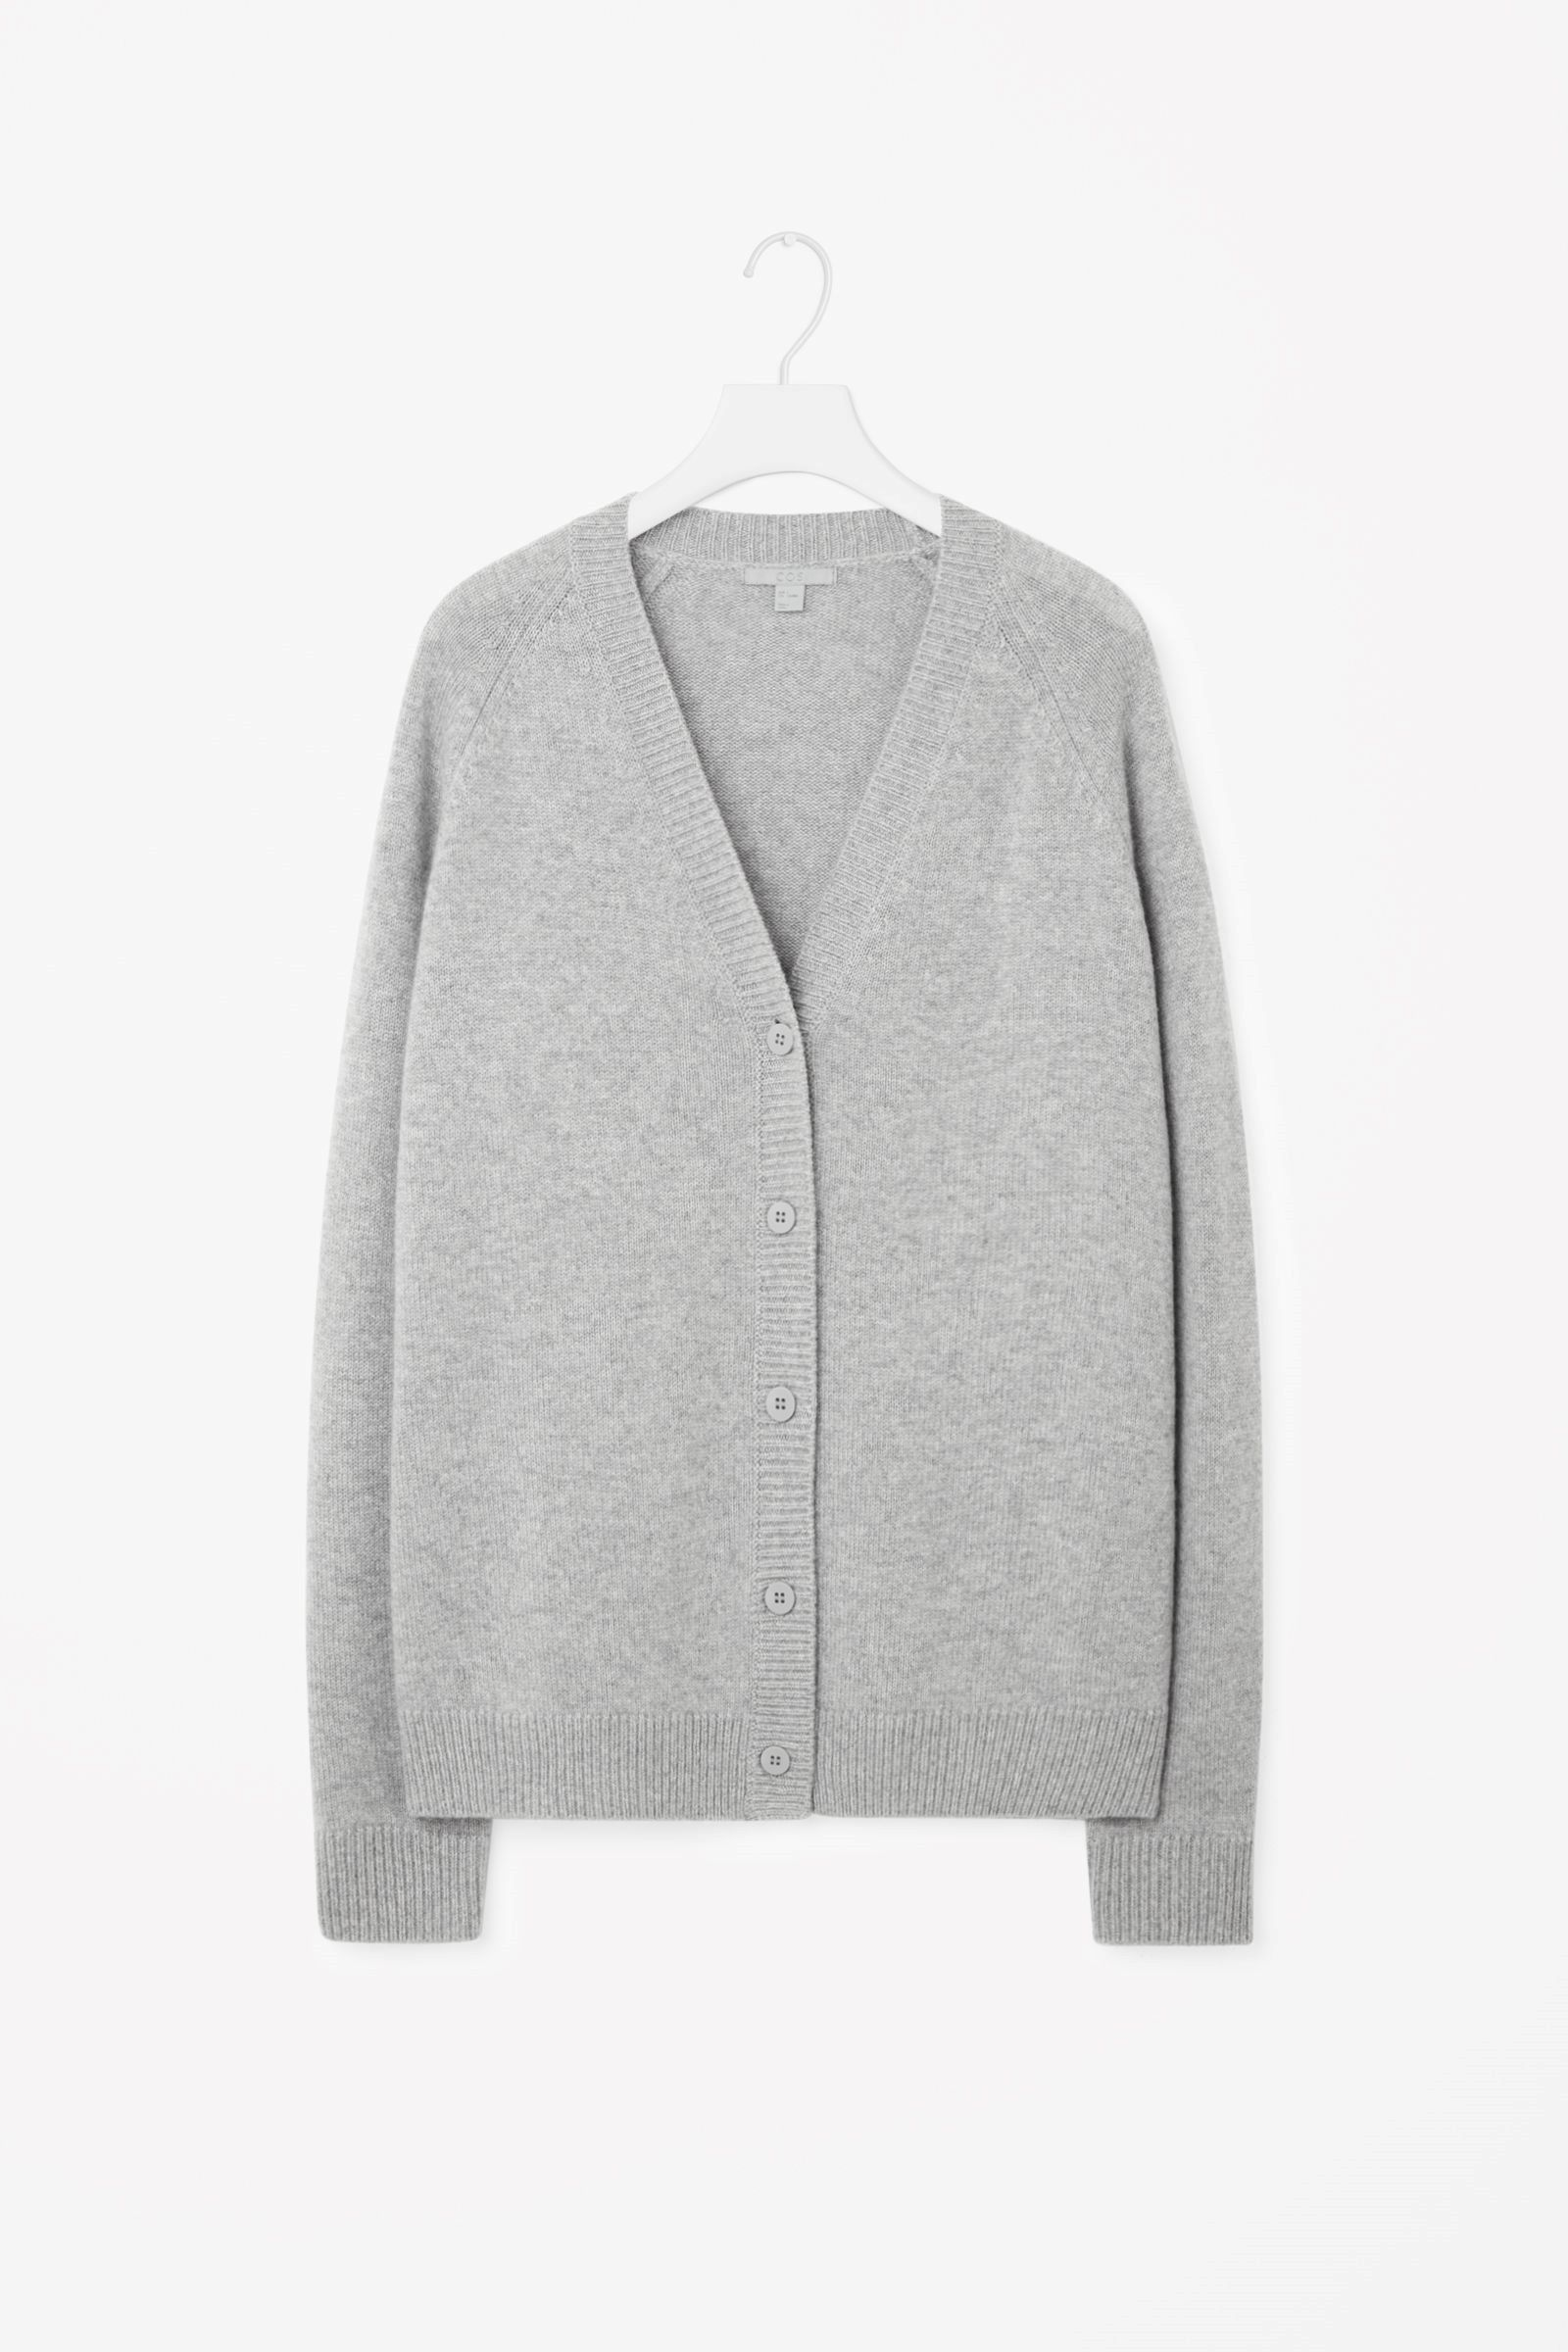 COS image 3 of Oversized cashmere cardigan in Light grey | COS ...